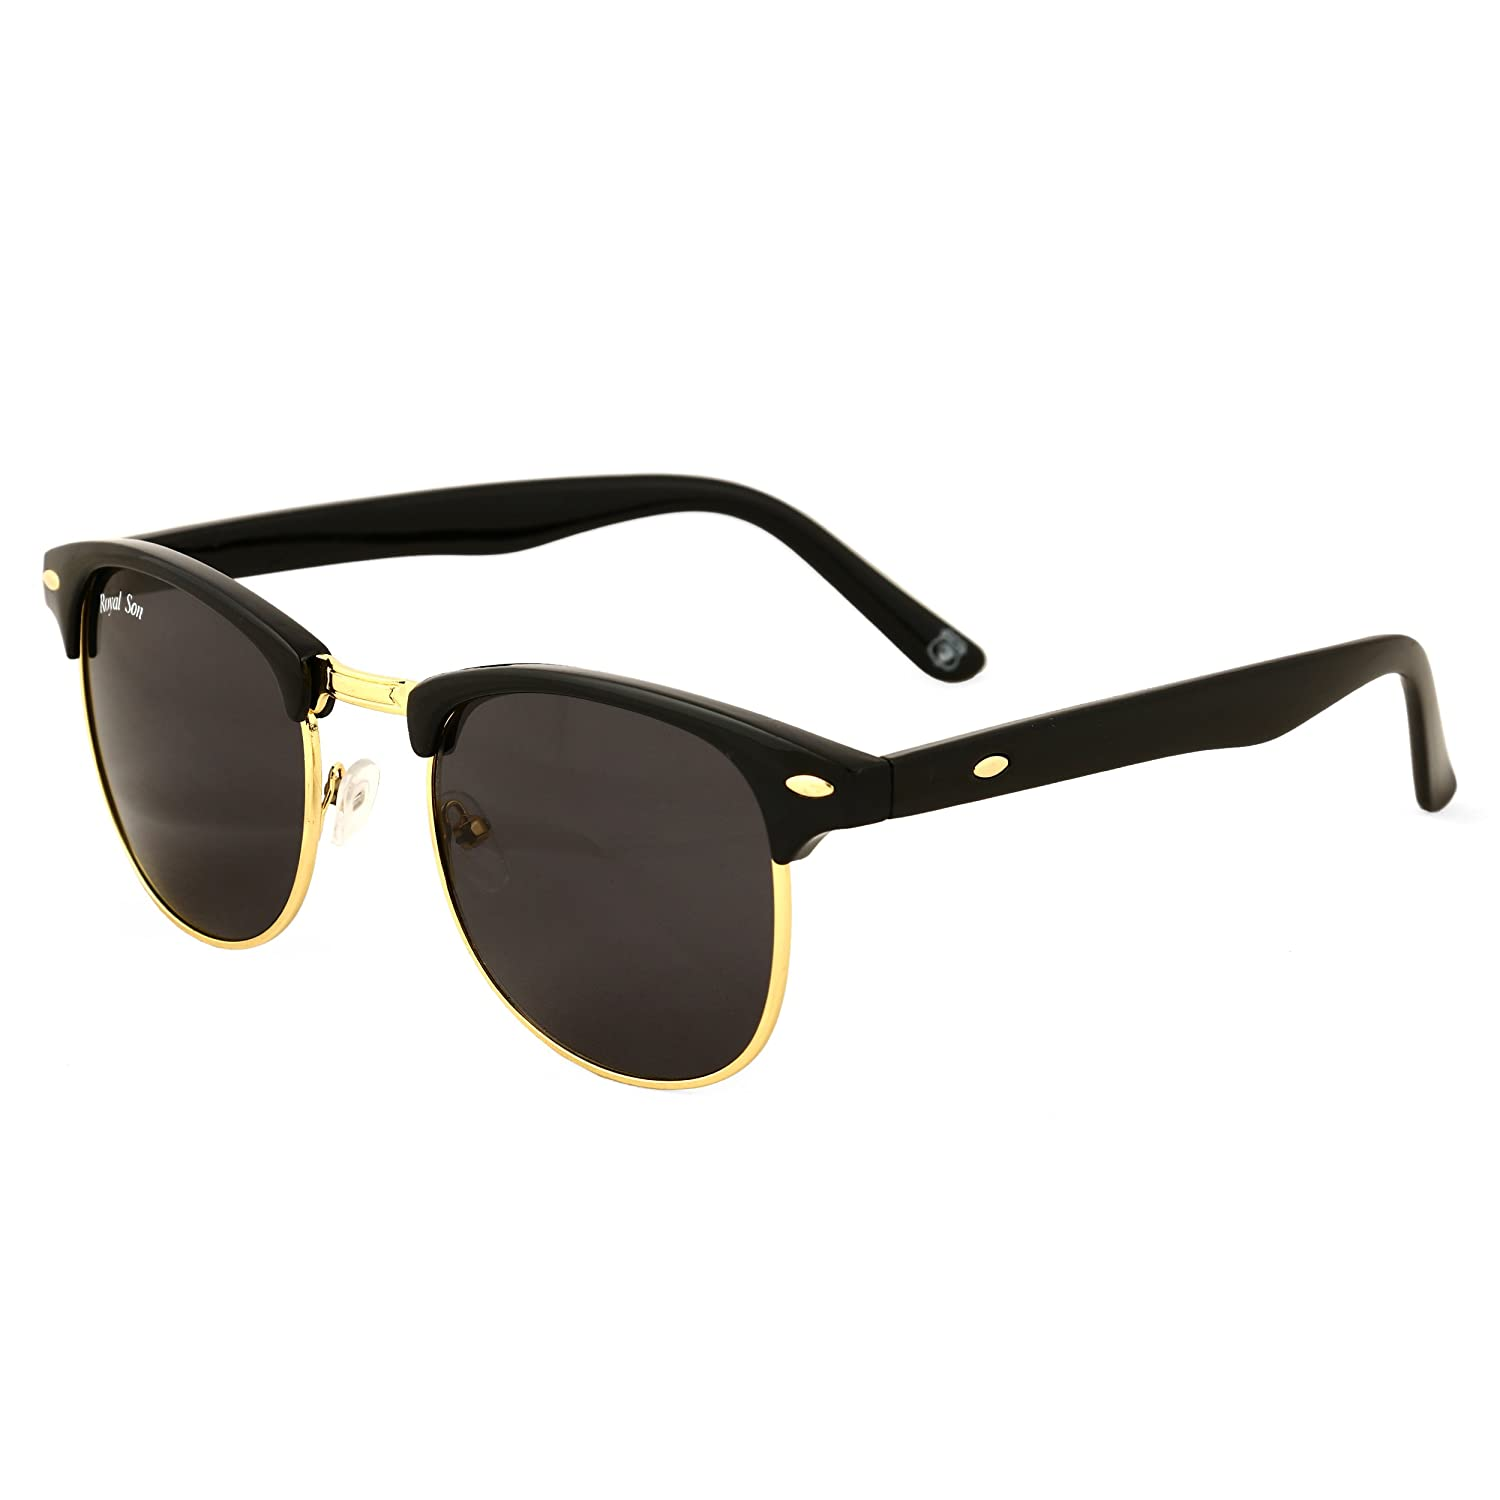 best clubmaster sunglasses  Sunglasses: Buy Sunglasses Online at Low Prices in India - Amazon.in